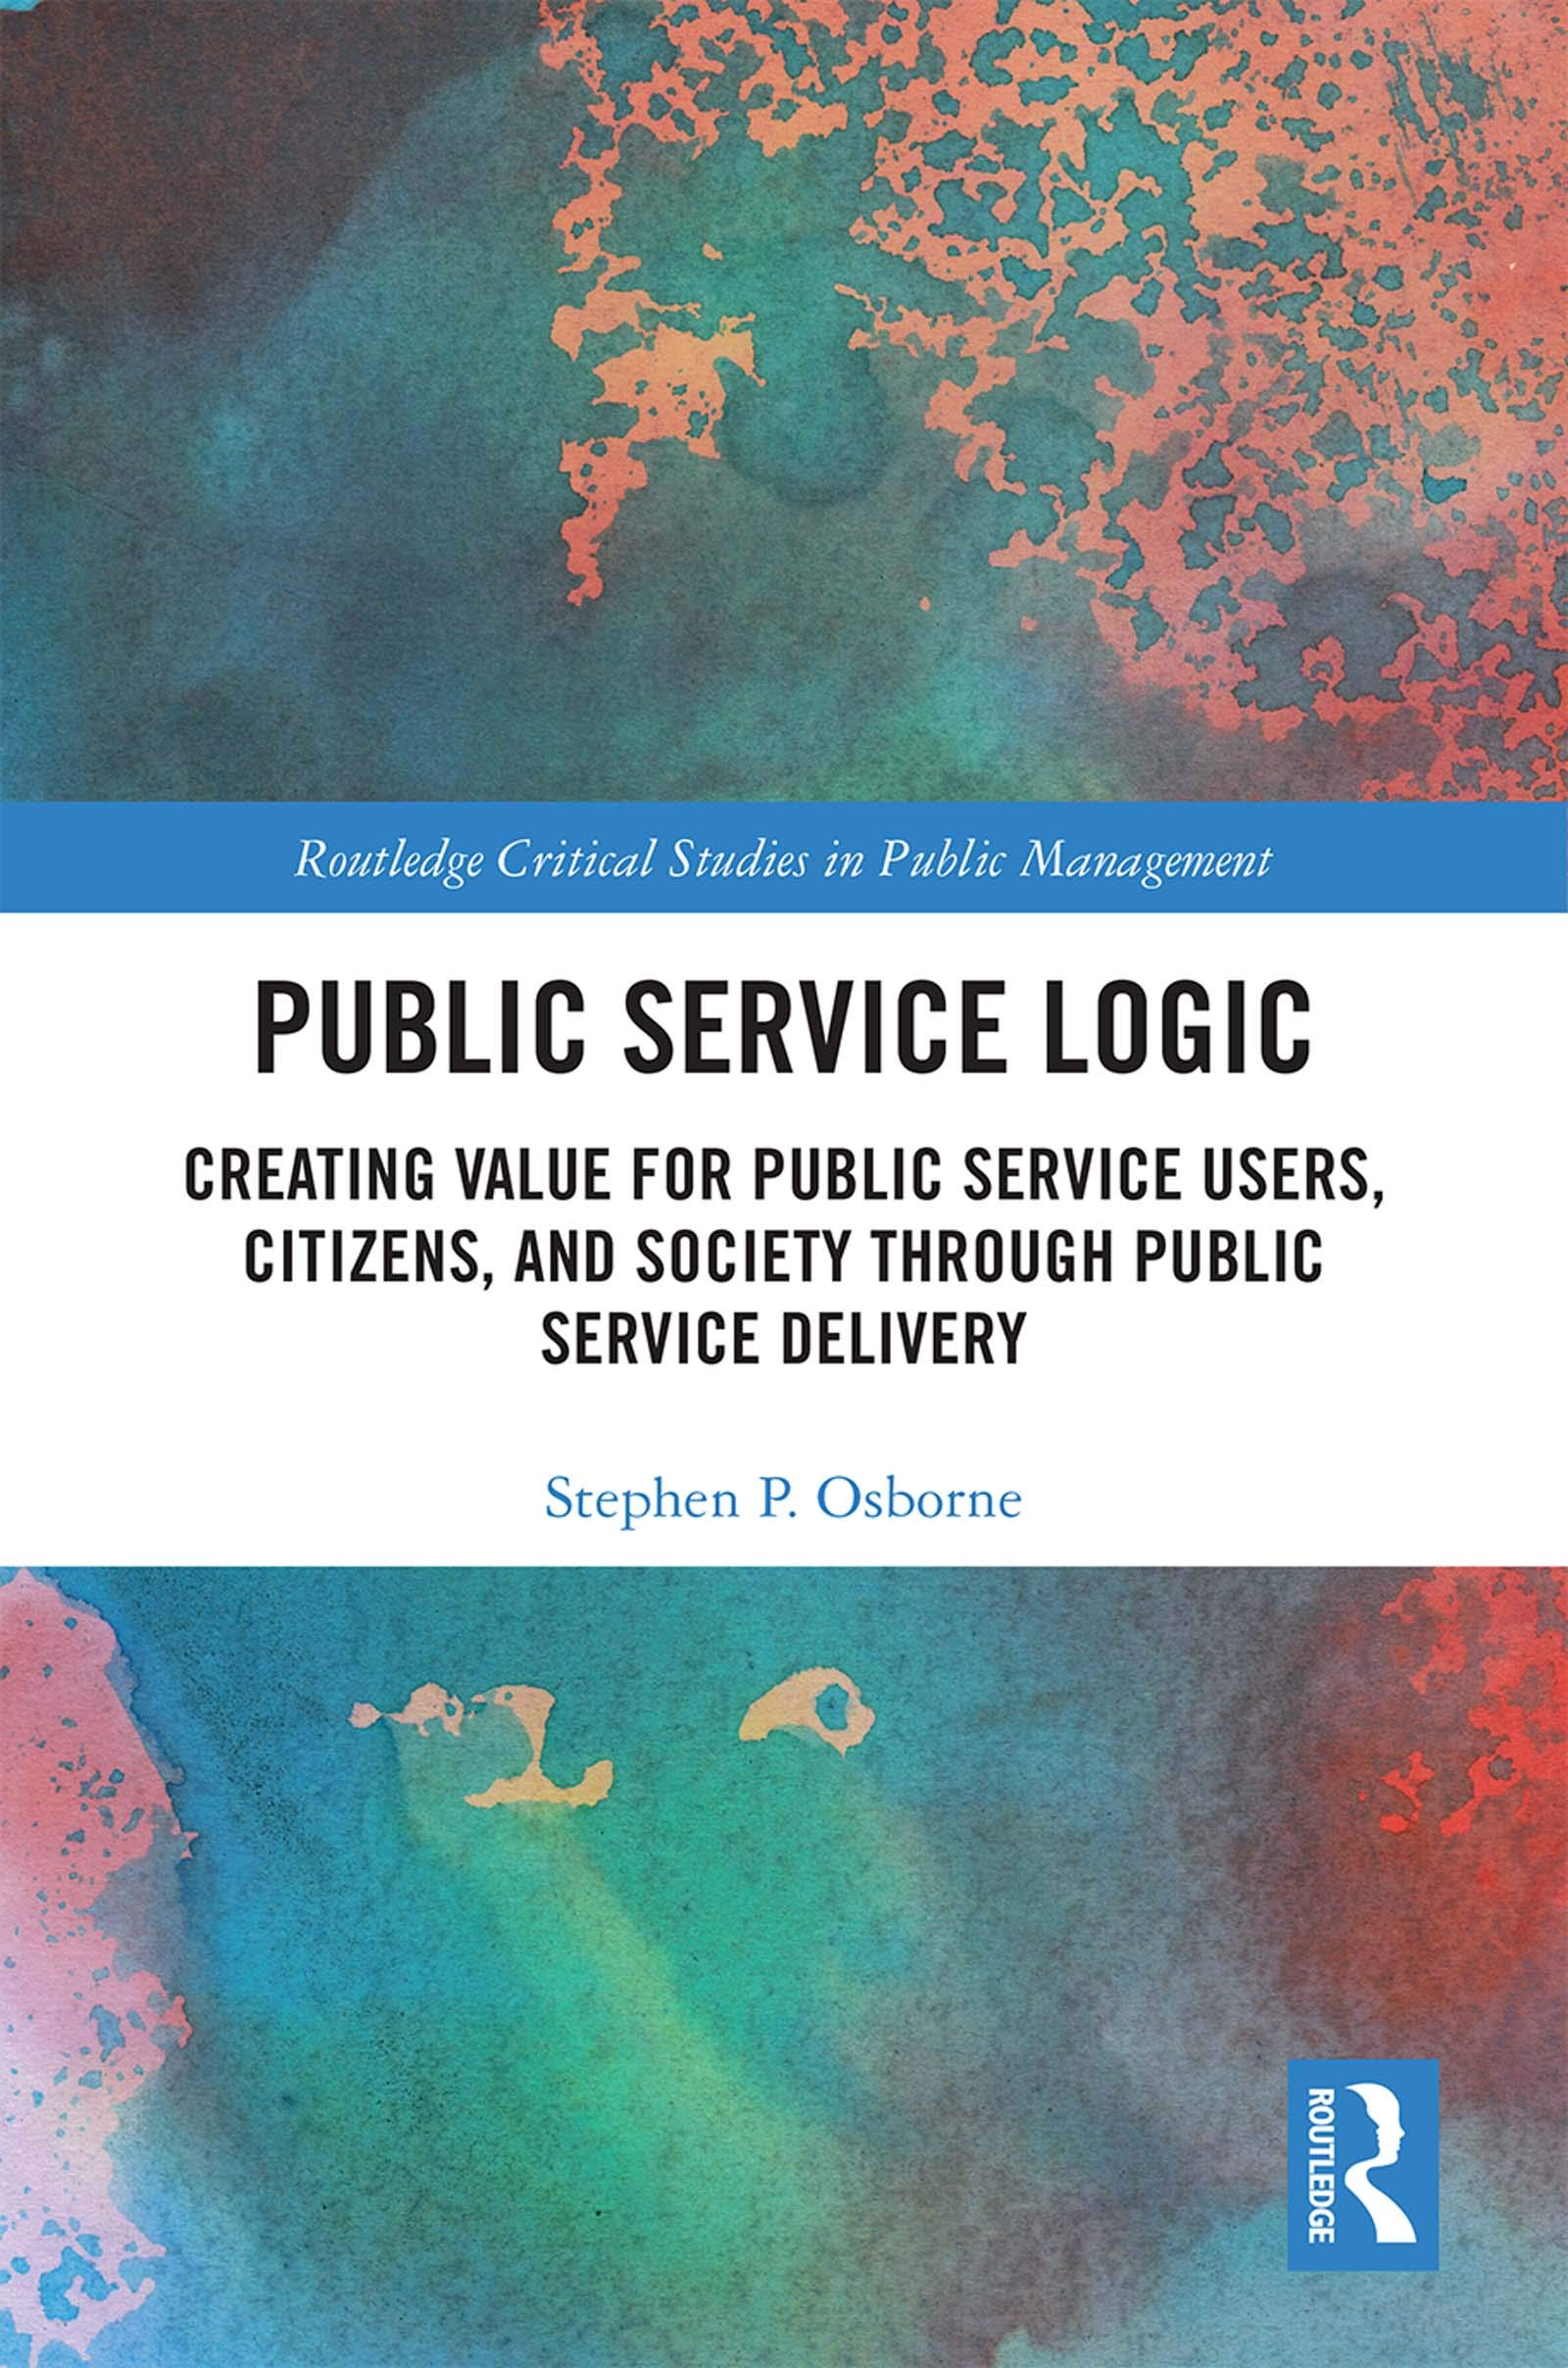 Public Service Logic: Creating Value for Public Service Users, Citizens, and Society Through Public Service Delivery (Routledge Critical Studies in Public Management)